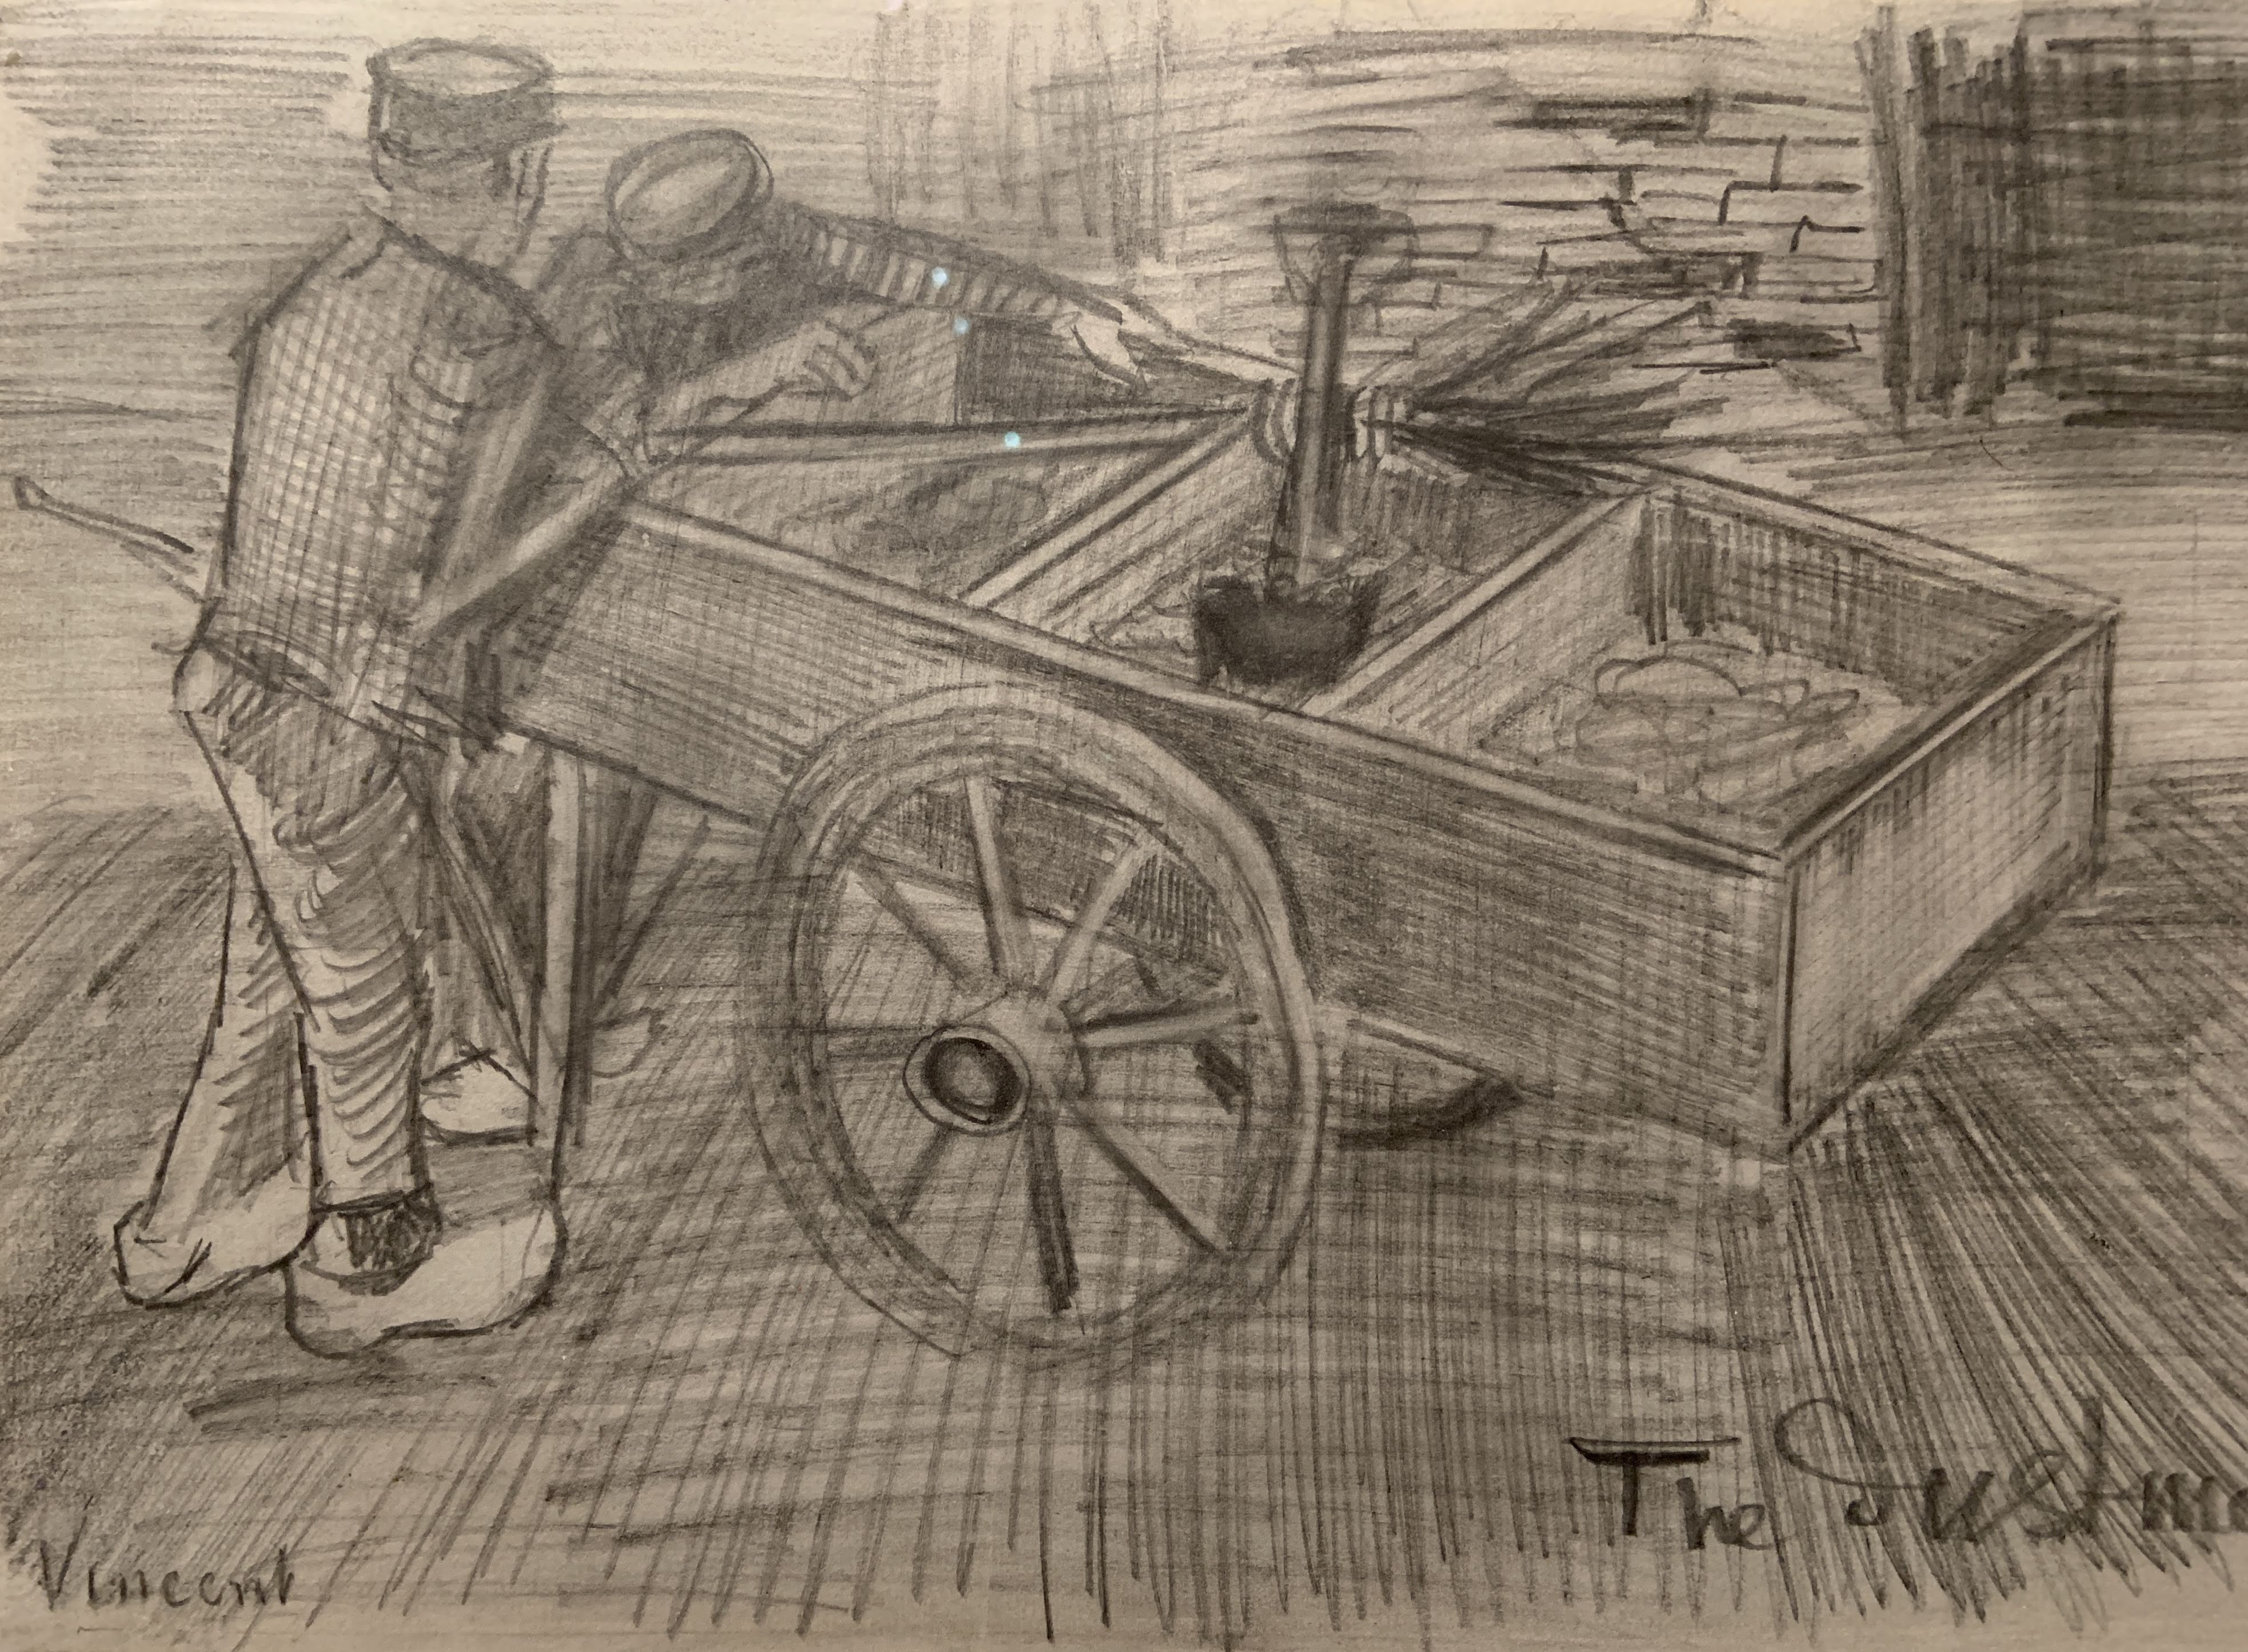 Vincent van Gogh - The Dustman. The Hague, 1883